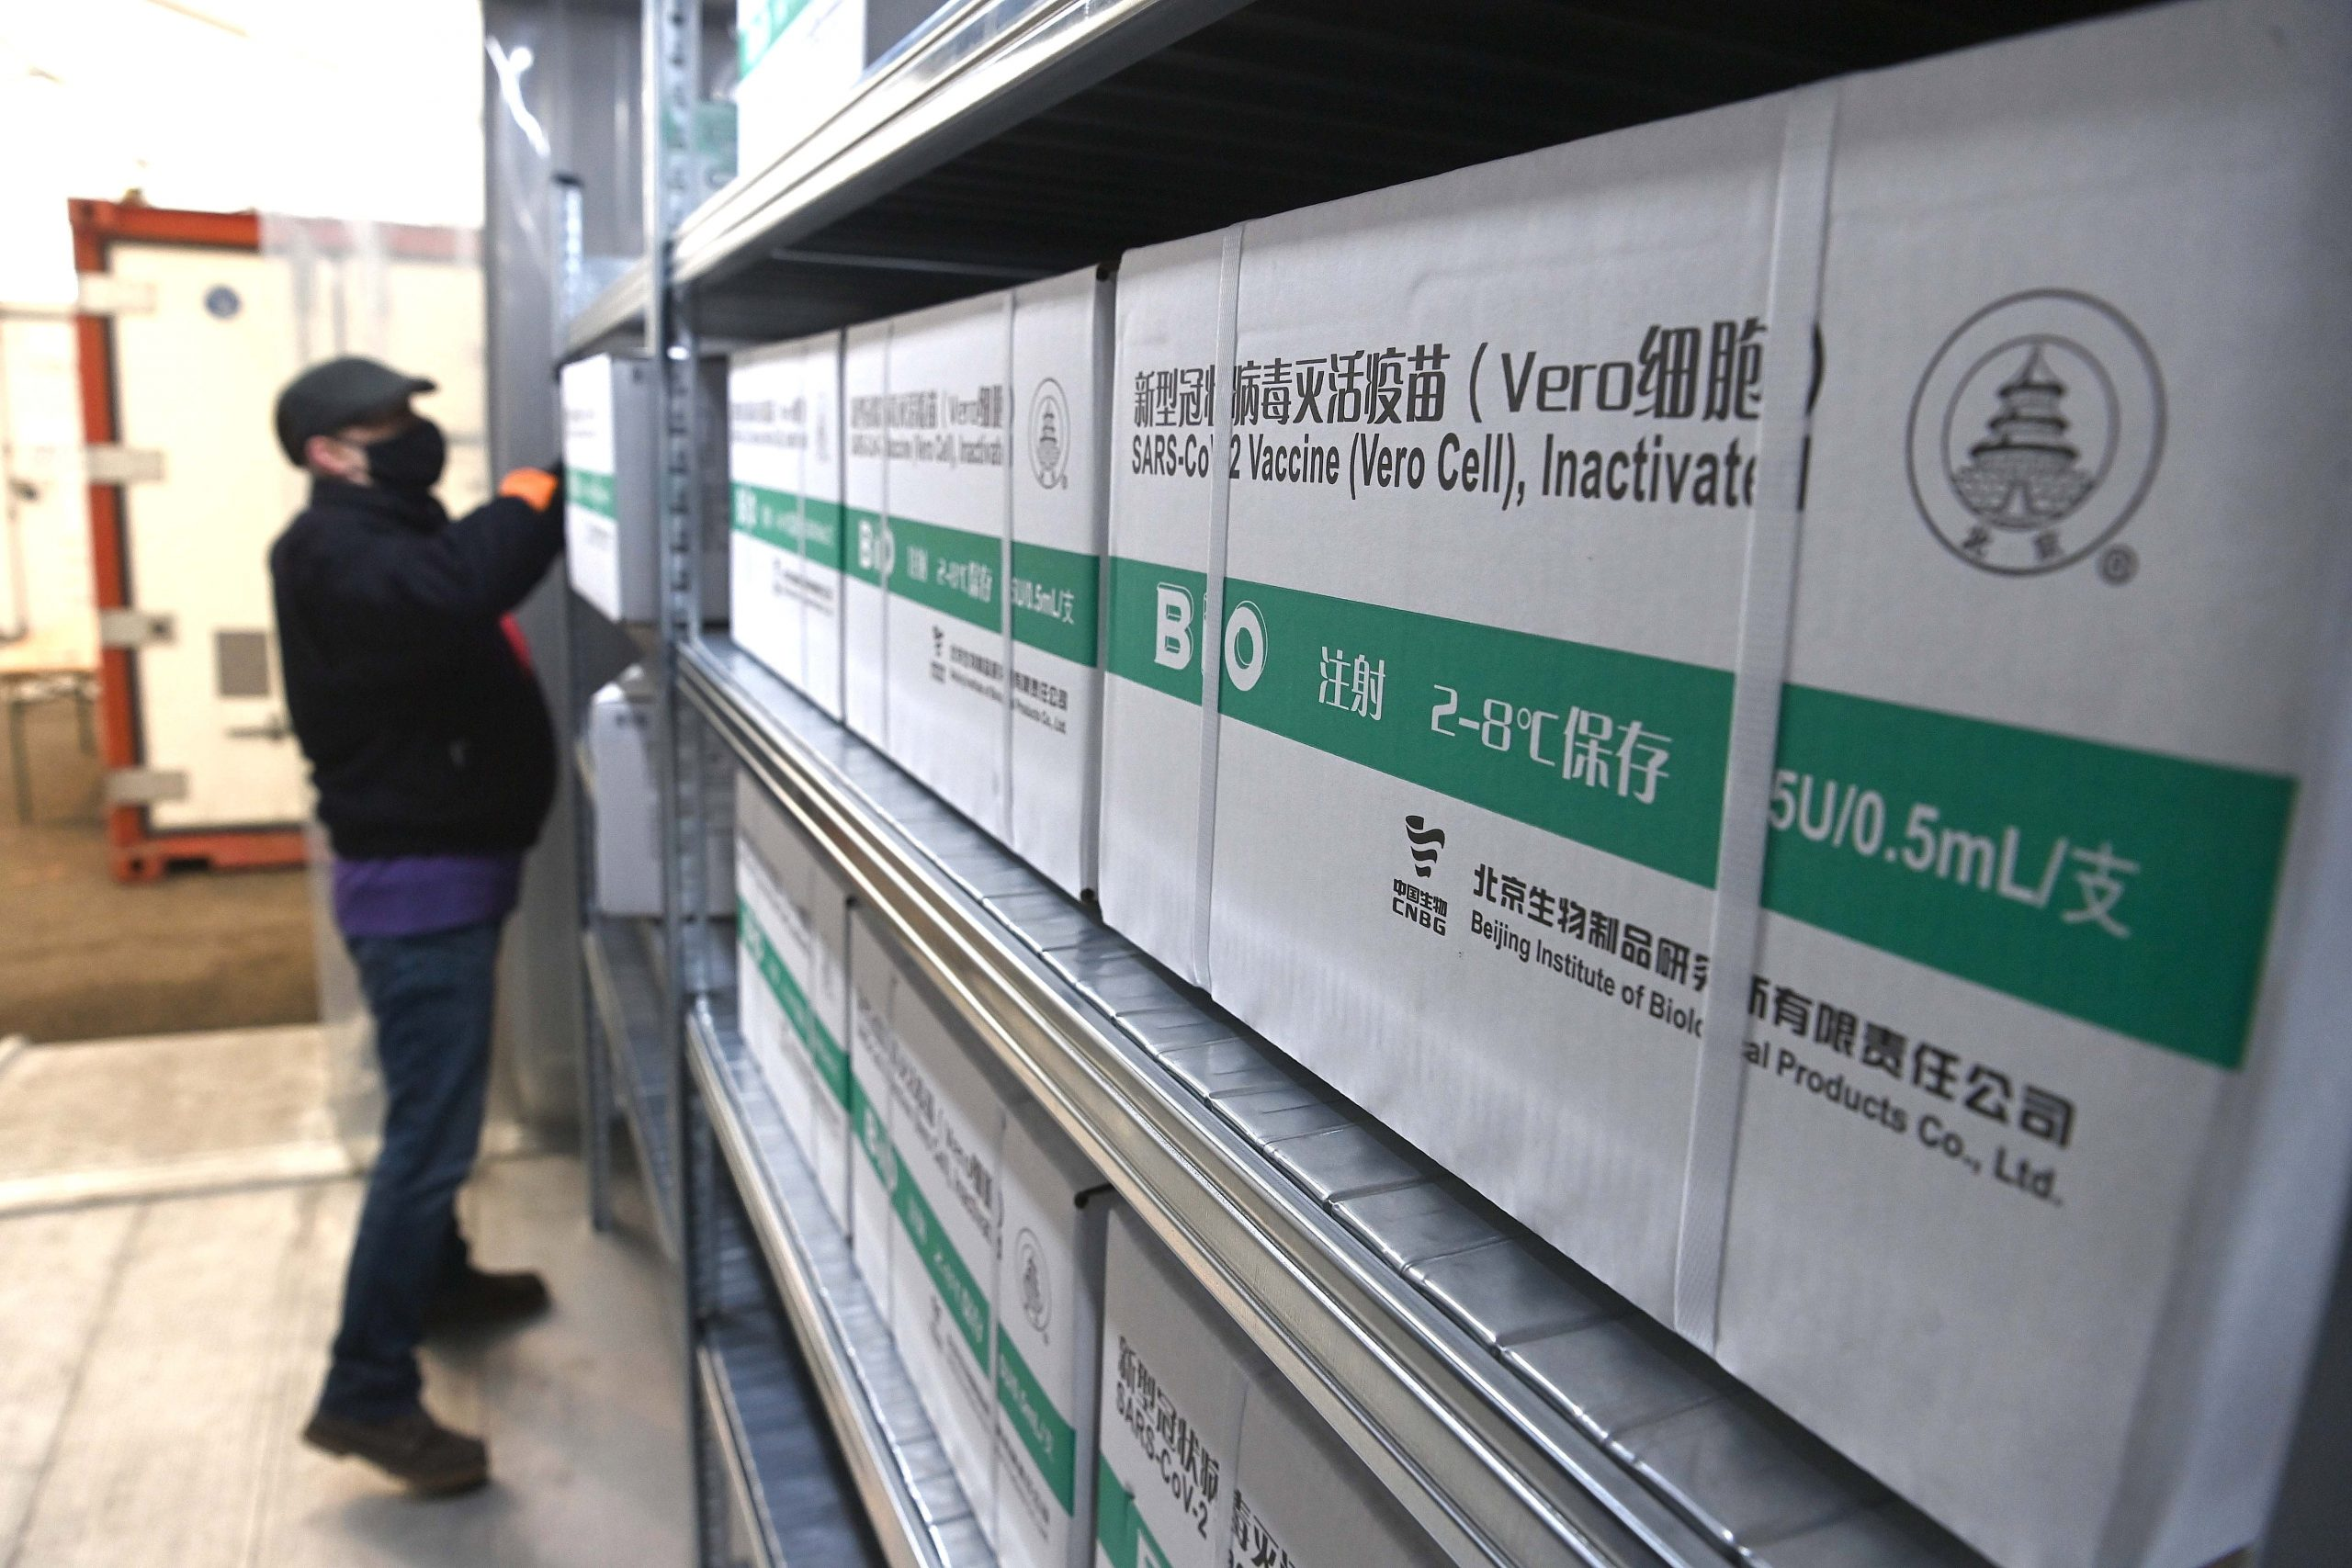 Skepticism Overshadows Chinese Vaccine's Rollout in Hungary